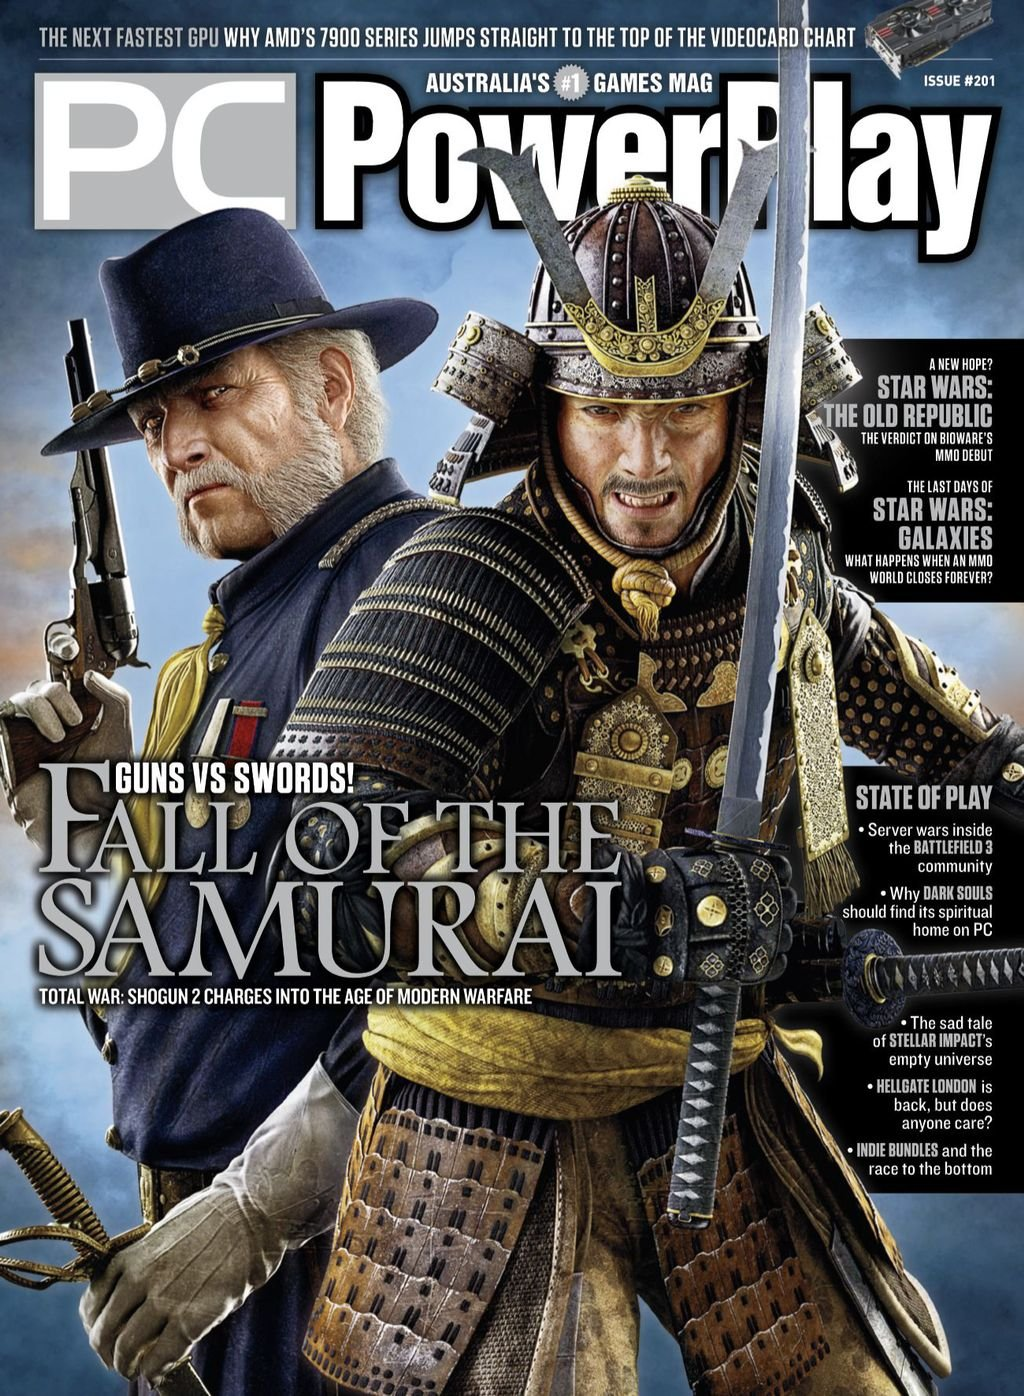 PC Powerplay 201 (March 2012)